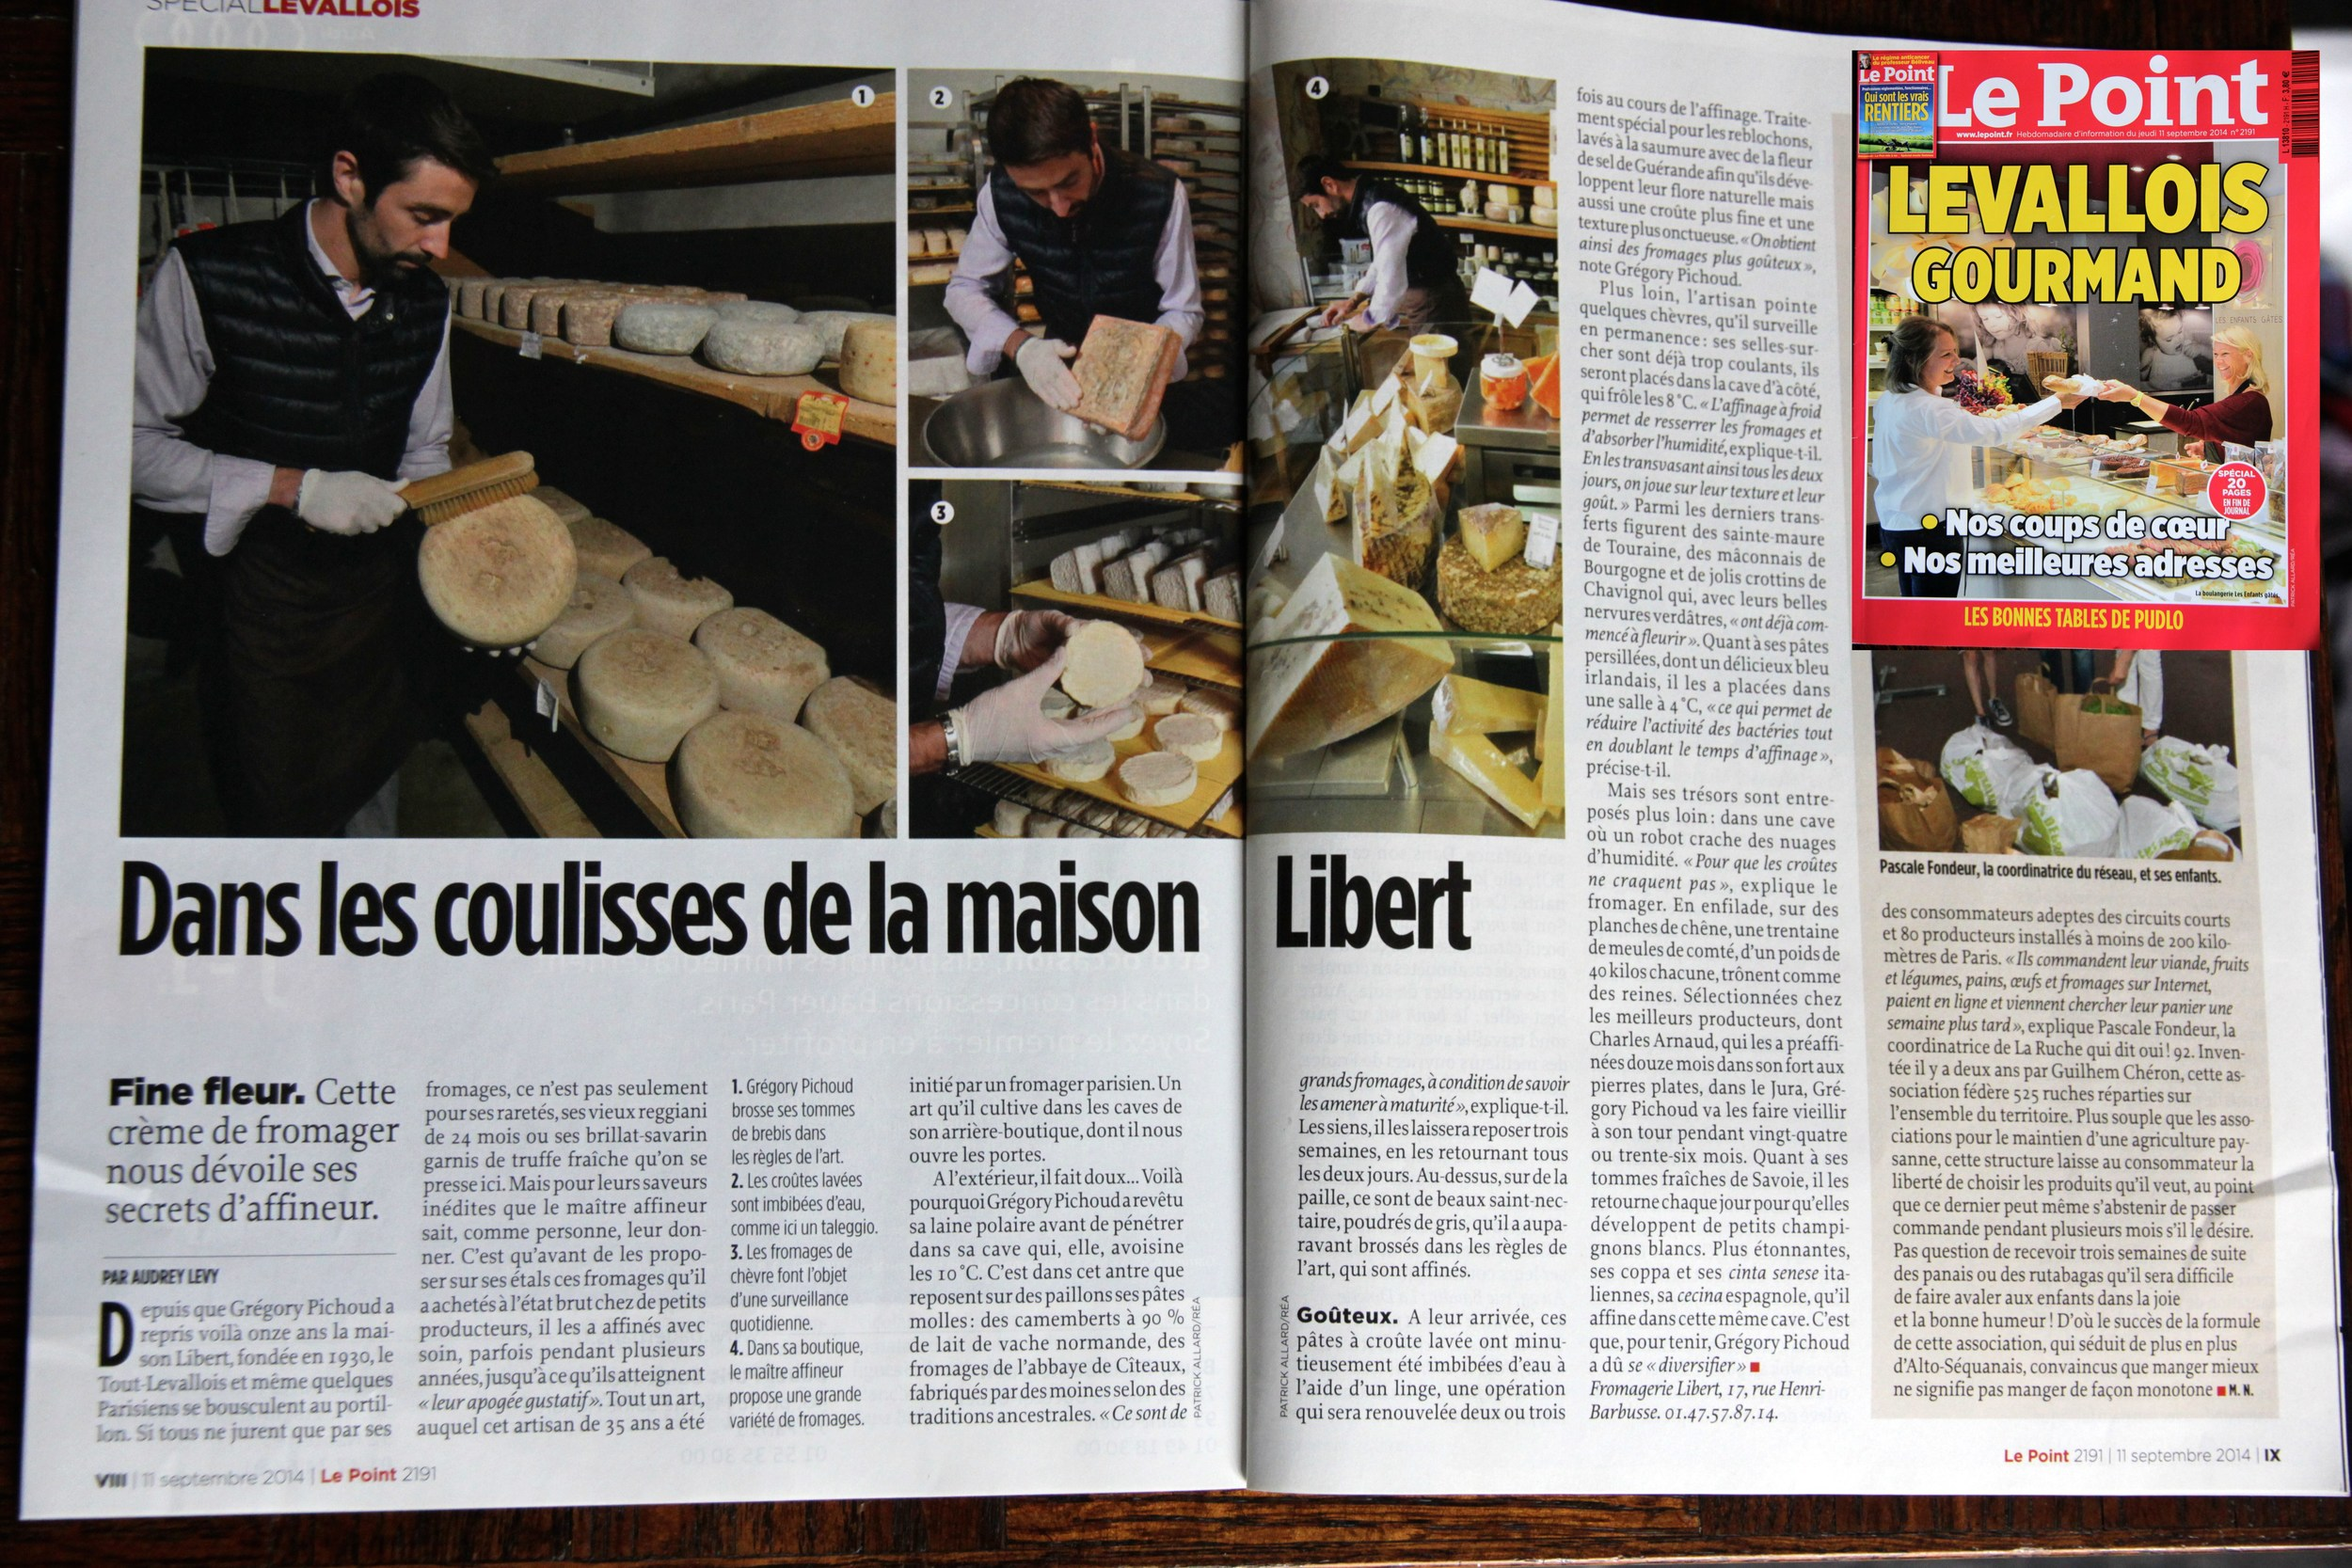 Article on Fromagerie Libert in the Levallois Gourmand edition of Le Point magazine (Sept 11 2014 no 2191) / Article sur la Fromagerie Libert dans l'édition« Levallois Gourmand » du magazine hebdo Le Point (11 septembre 2014n° 2191)